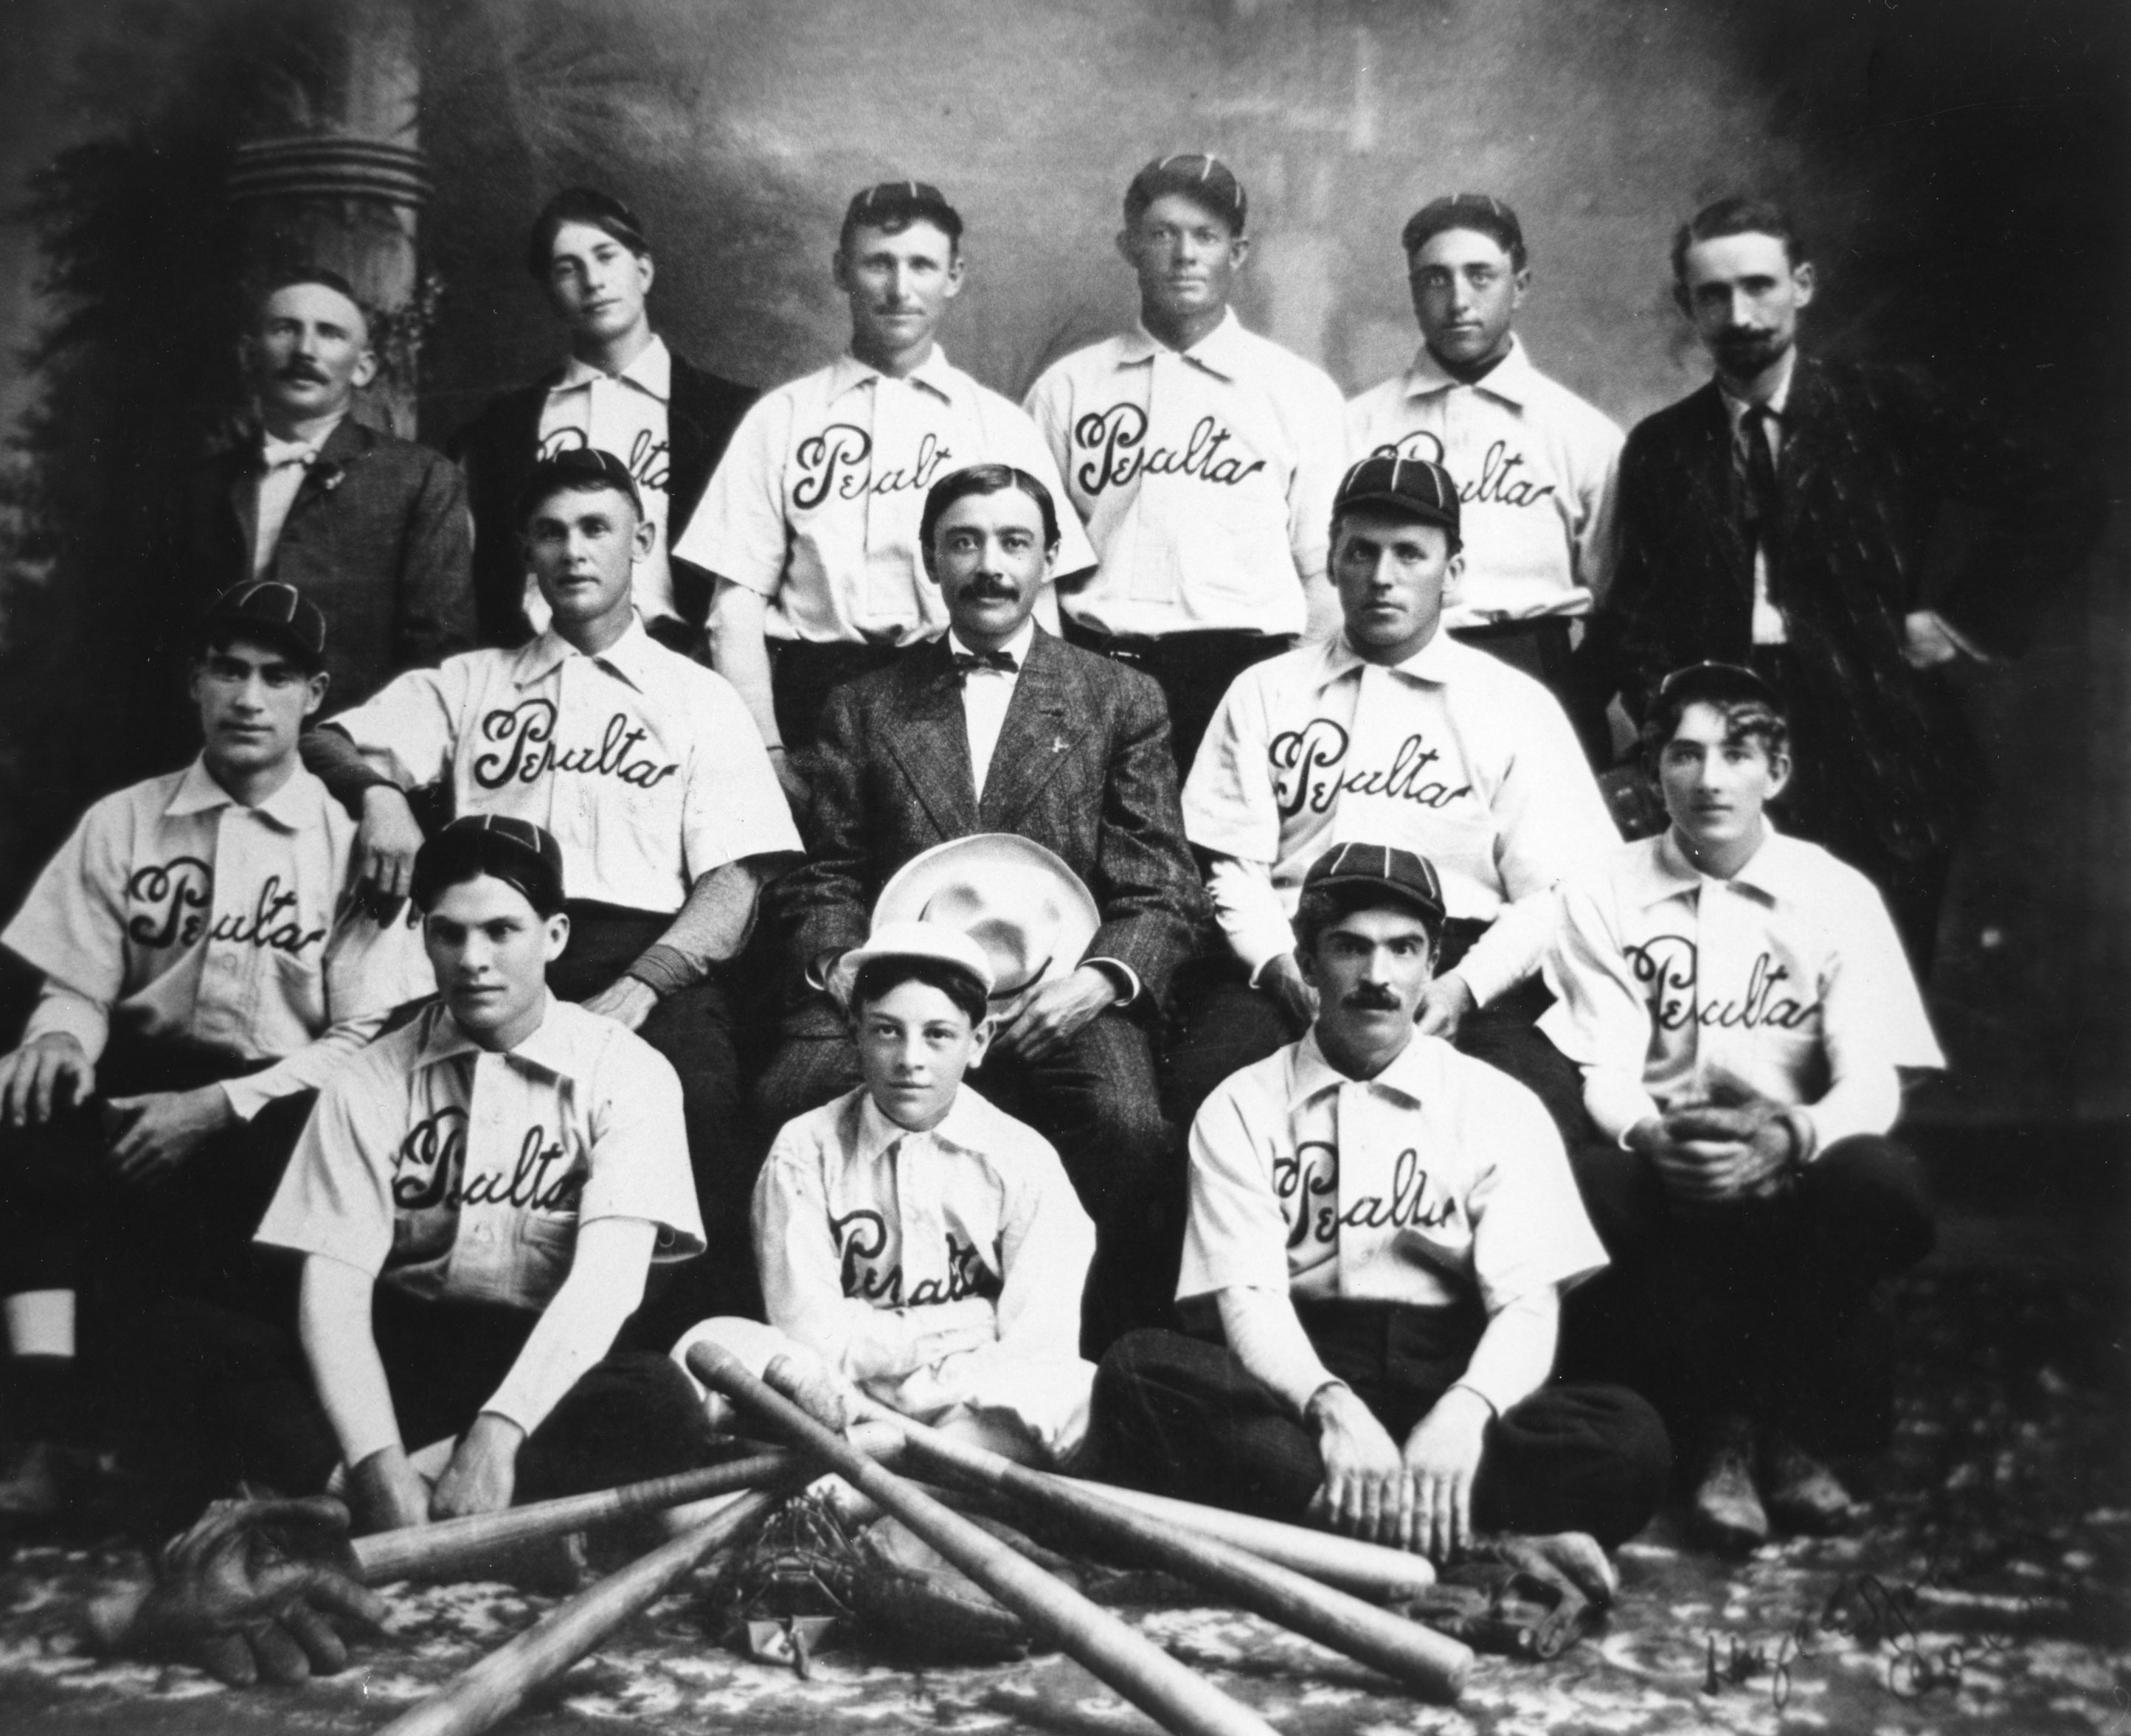 Peralta baseball team, Greeley, about 1910